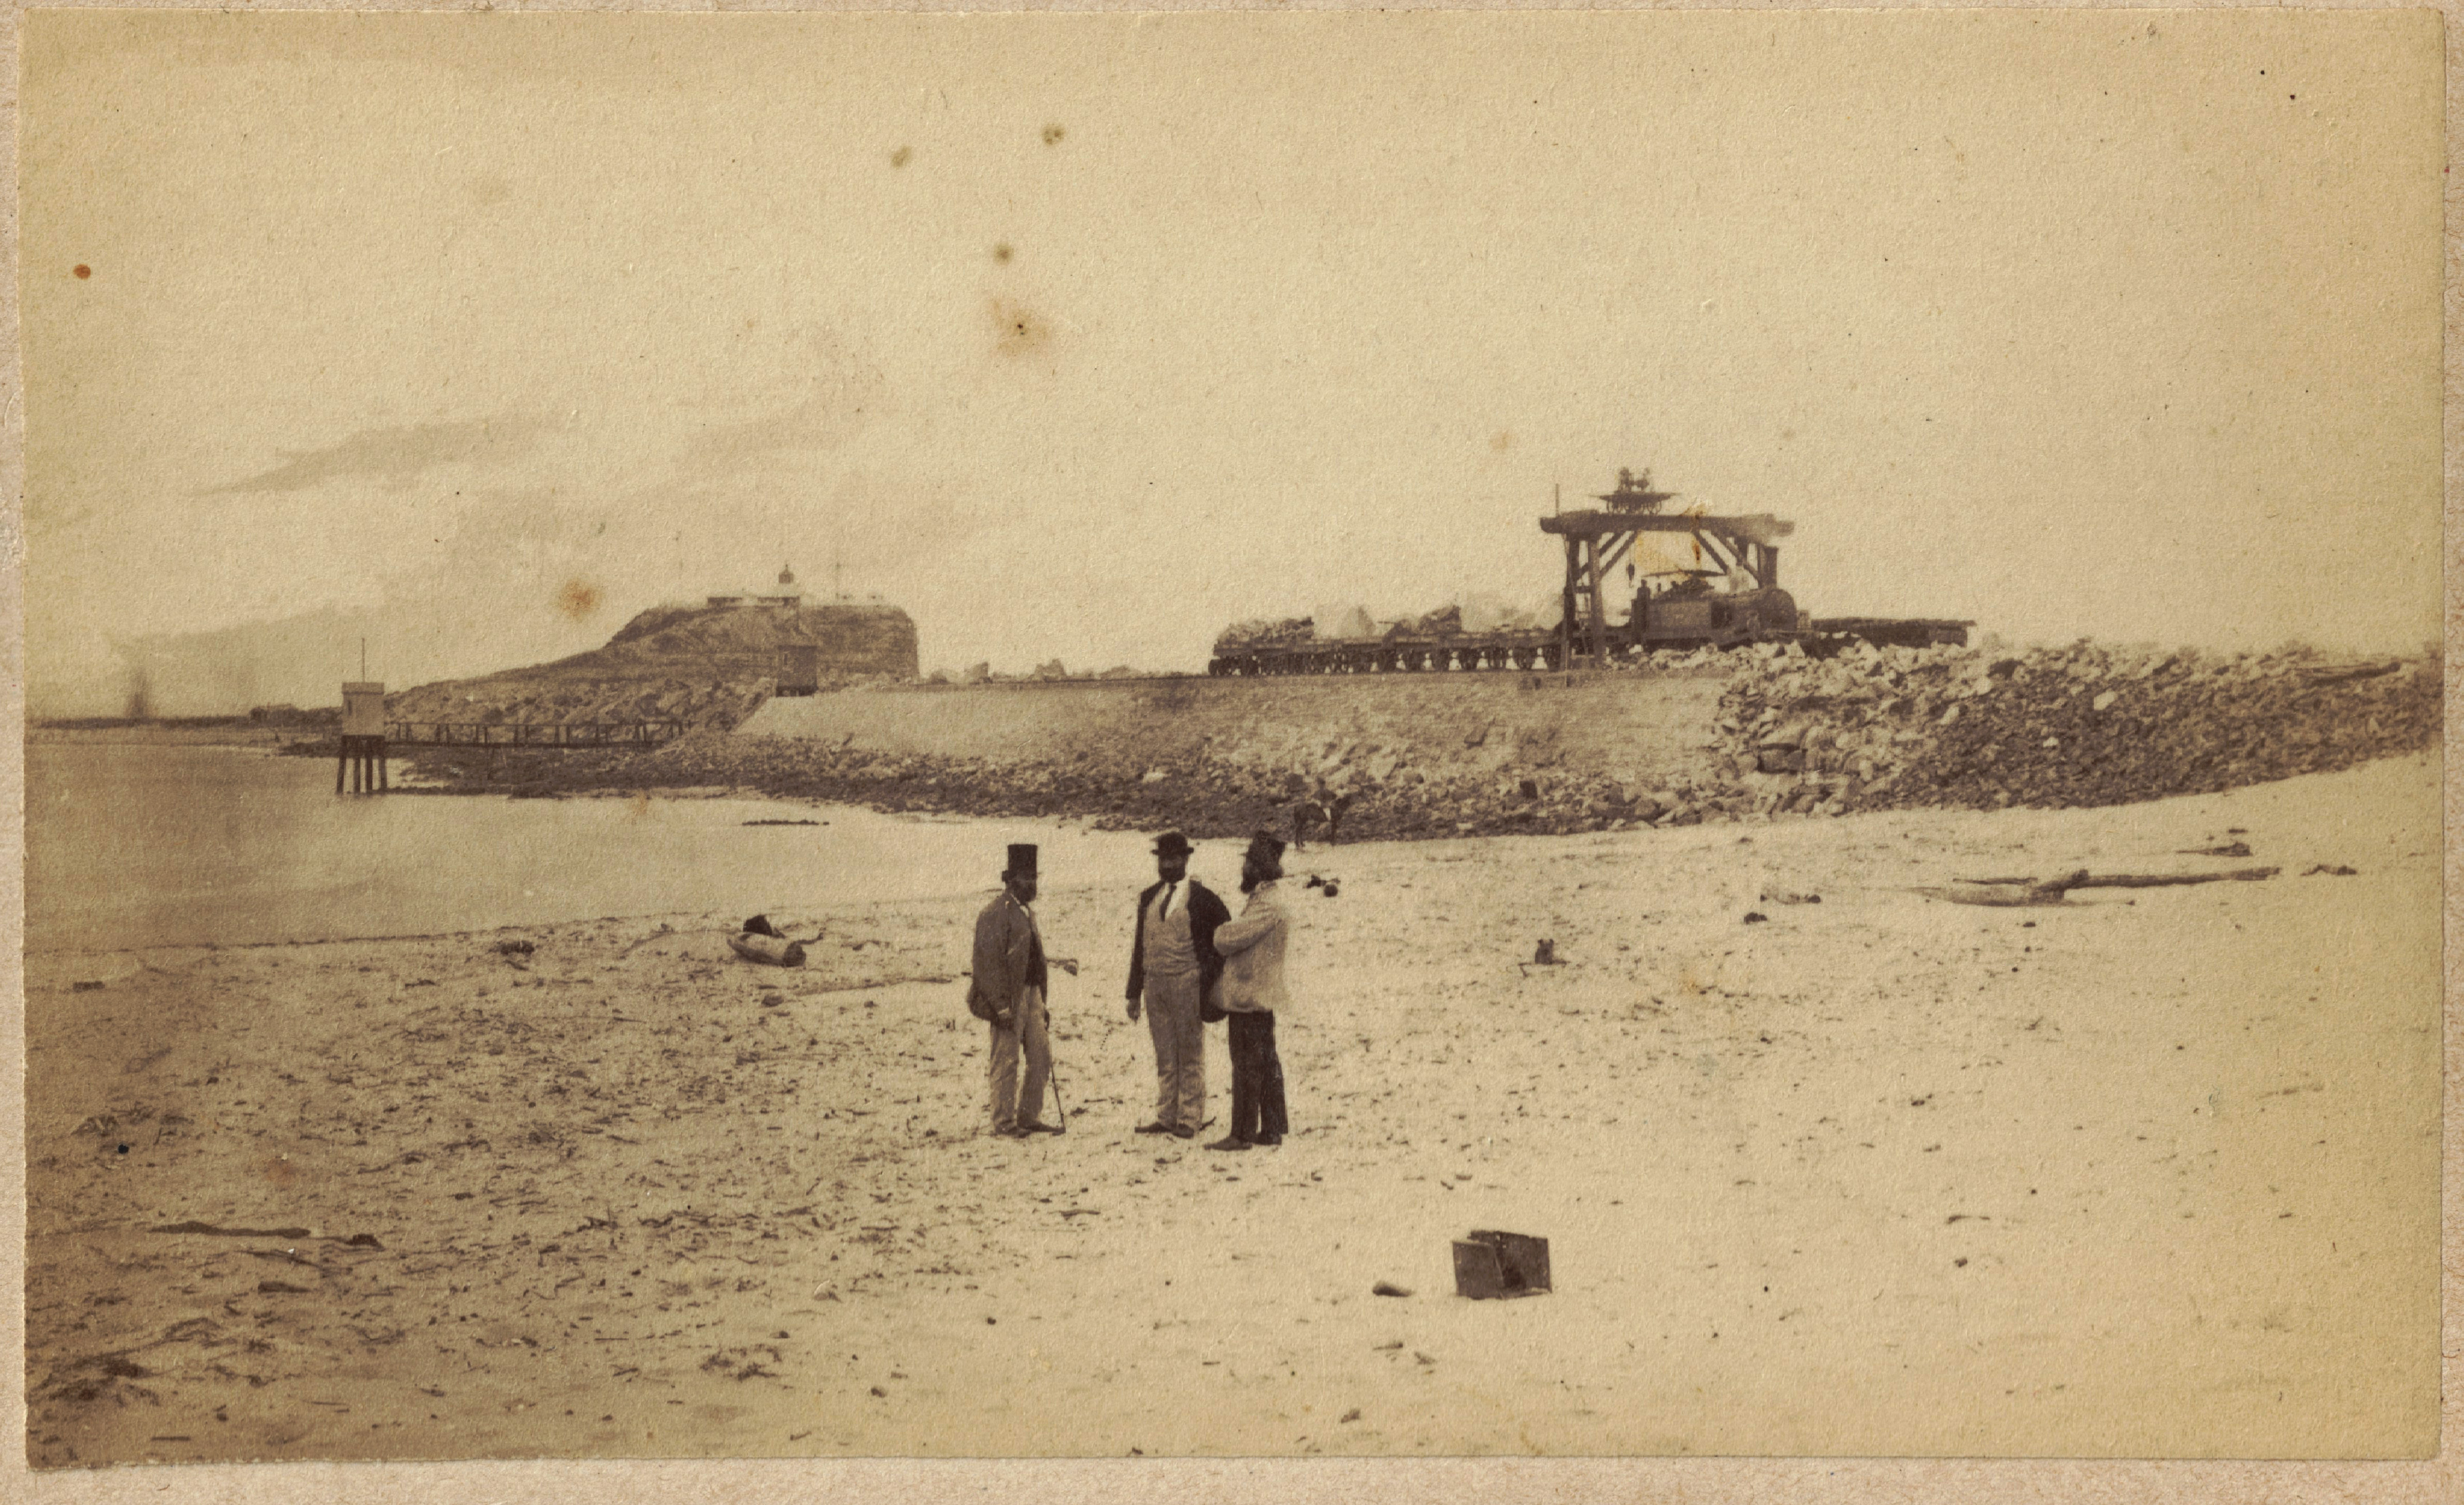 Newcastle Breakwater under construction, circa 22 October 1870 - 1 December 1870 (Photo Credit: Photographed by Beaufoy Merlin. Digitised by Anne Glennie from Glennie Family Albums) Click for larger view